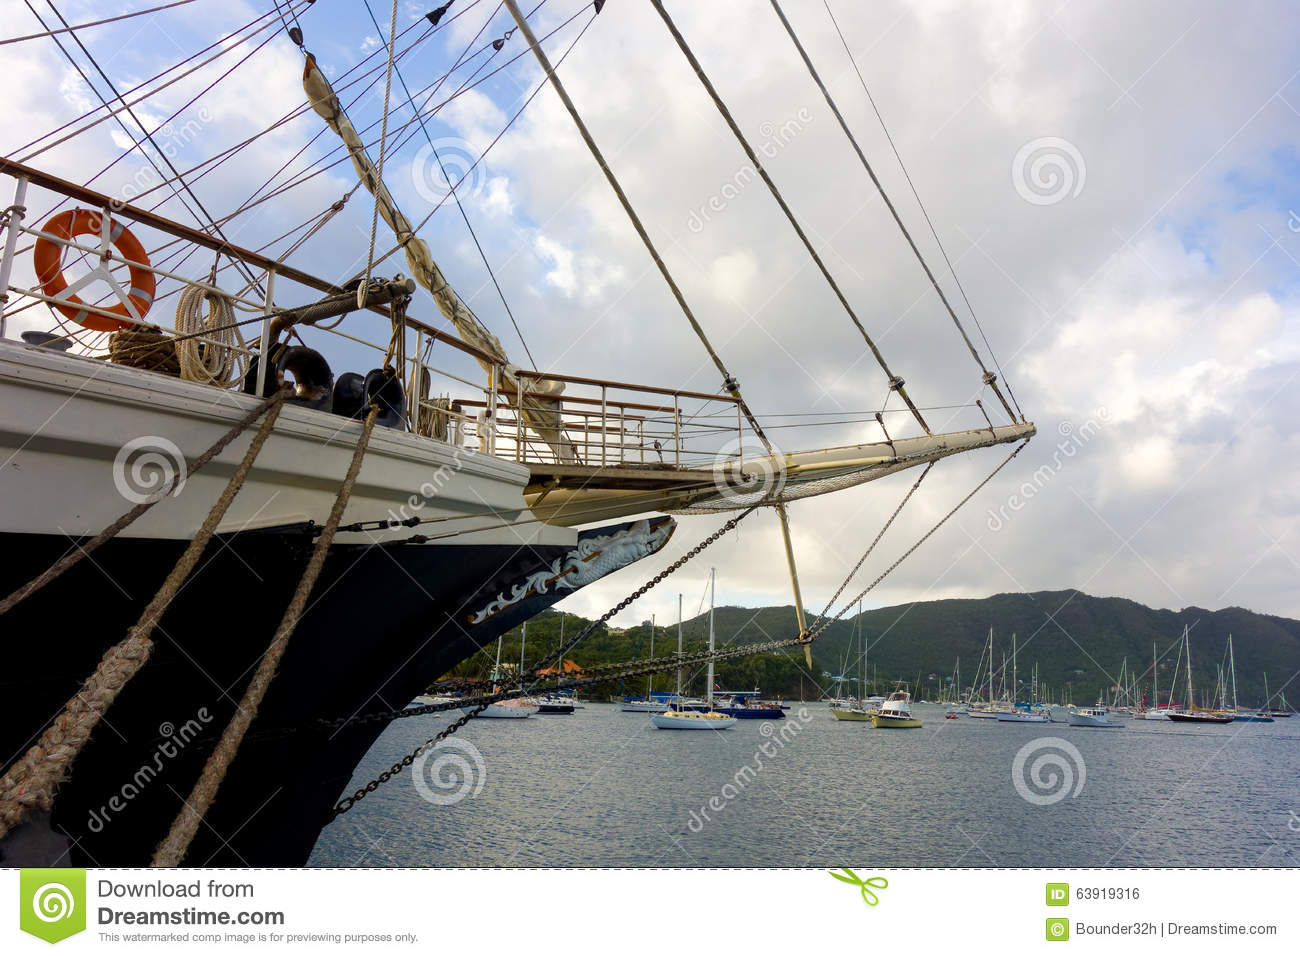 The newly arrived sailing ship tenacious in the windward islands